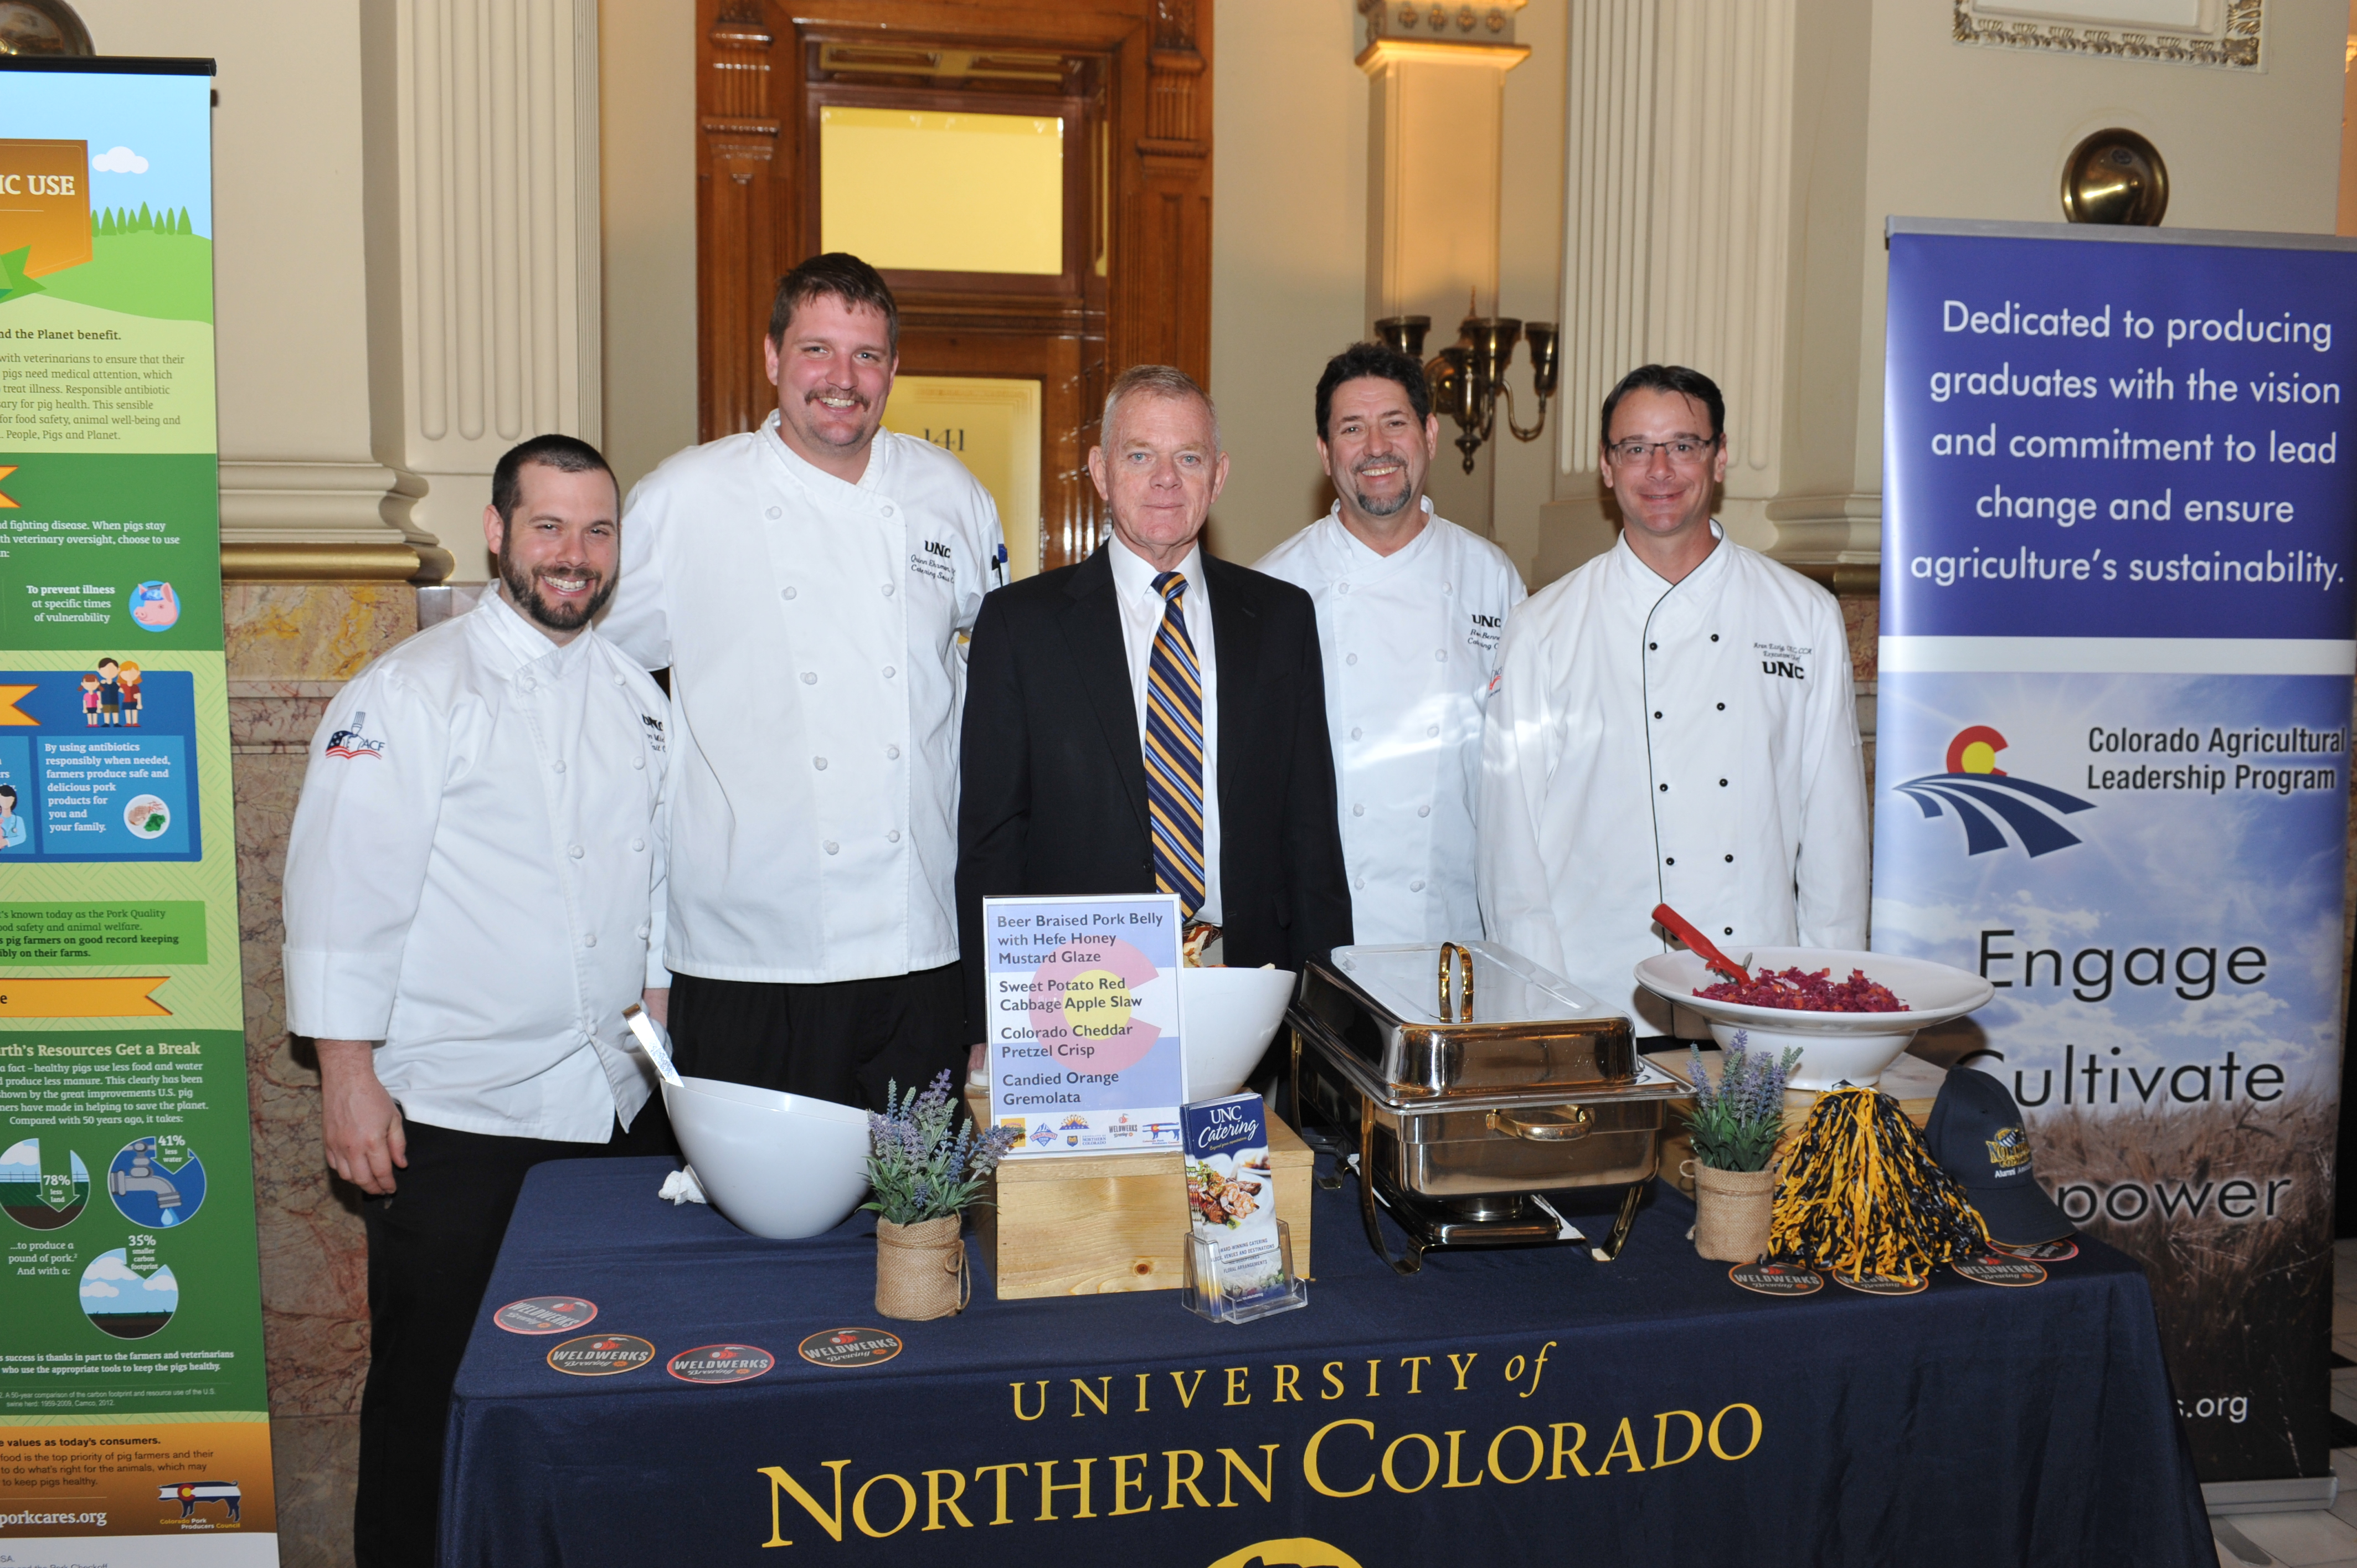 Bill Hammerich and the UNC Chef Team